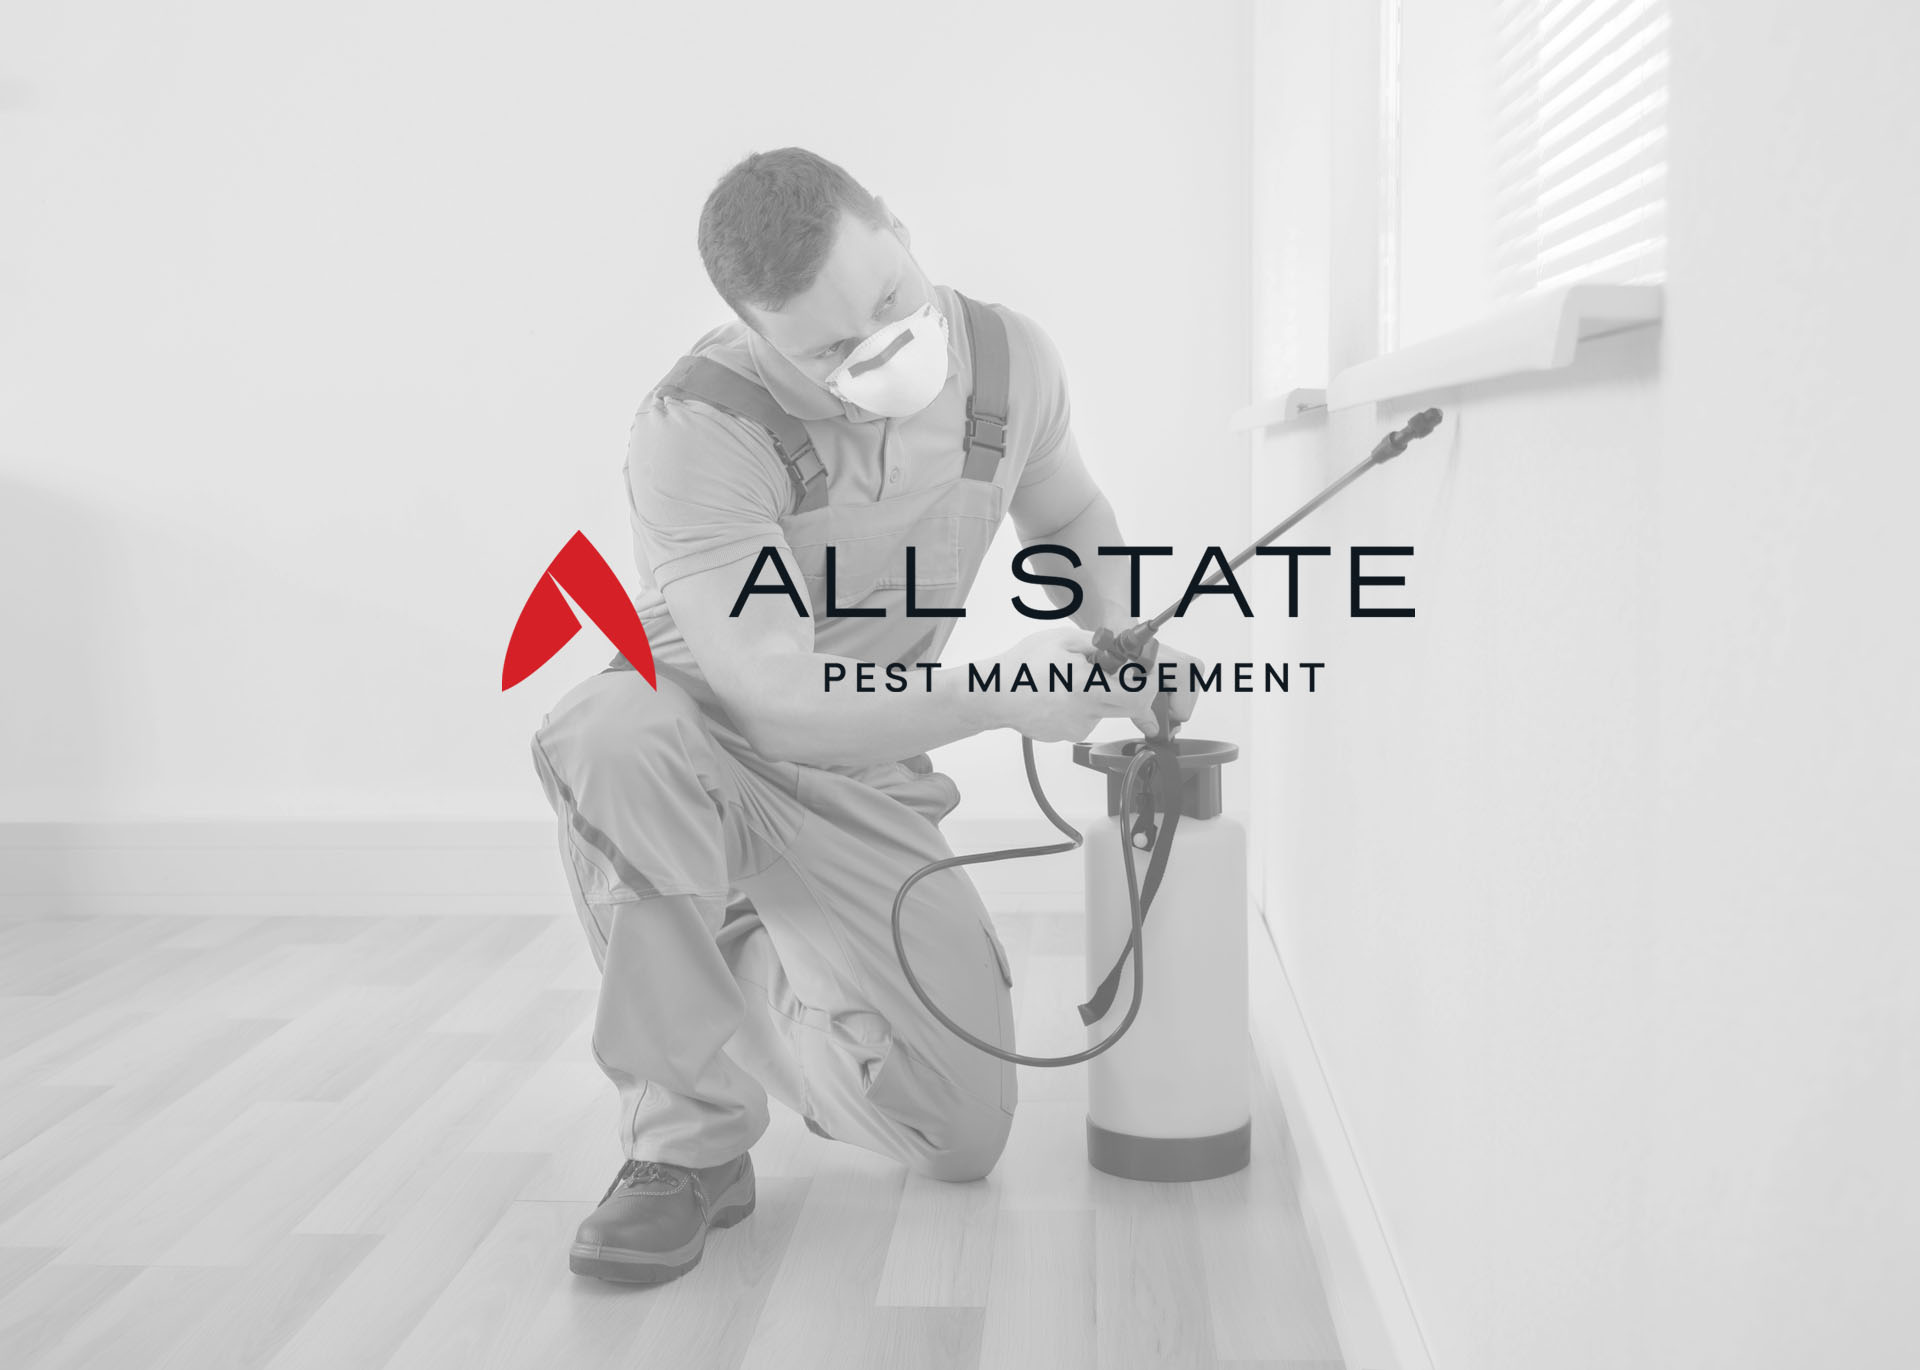 All State Pest Management